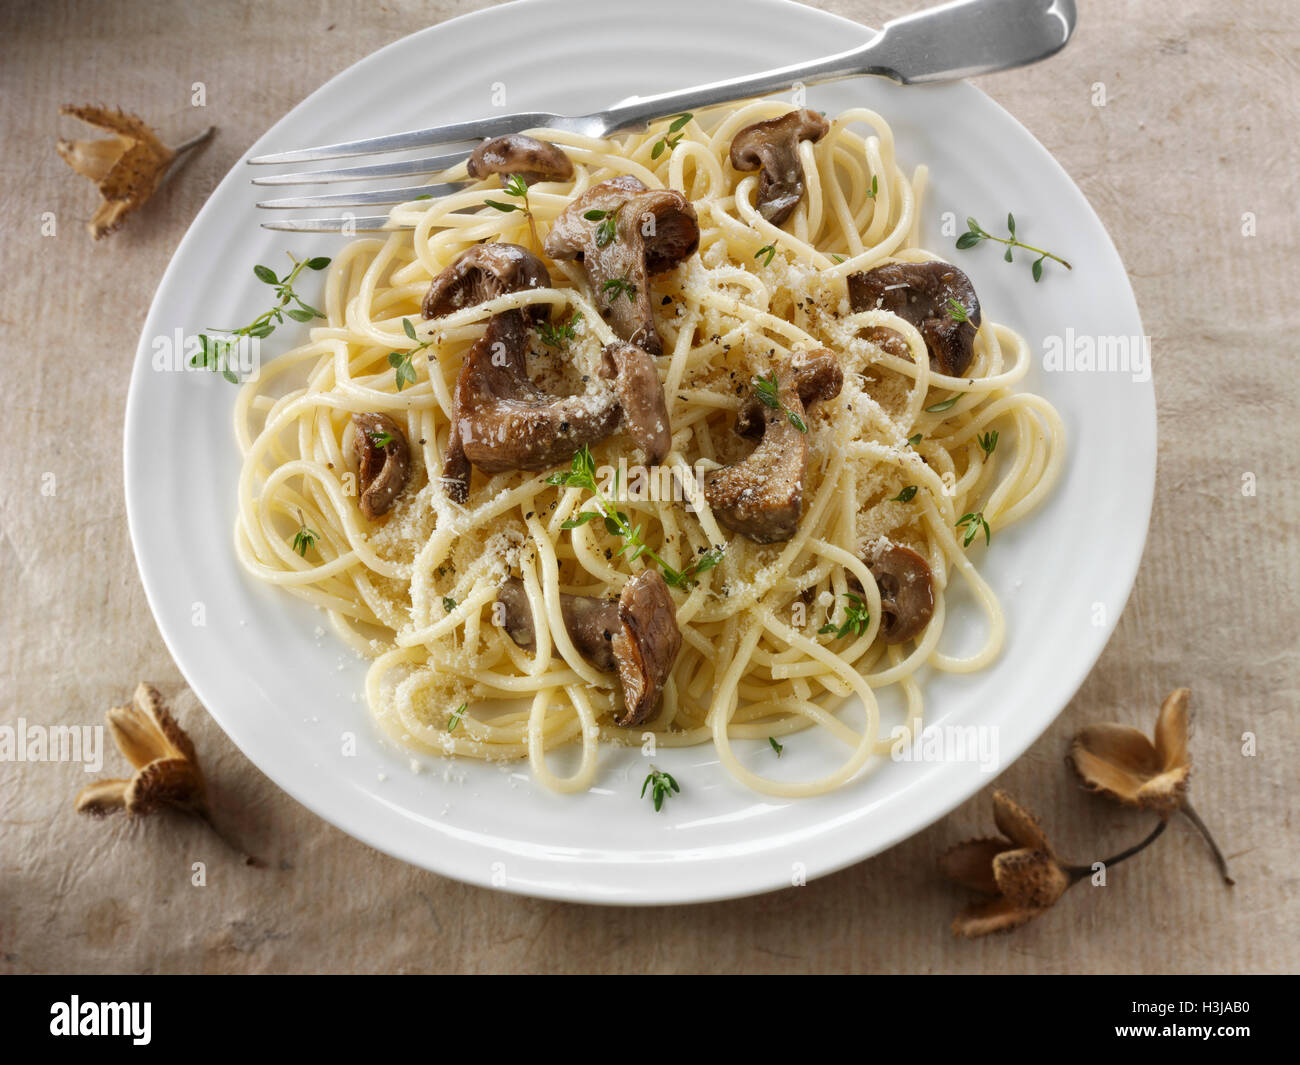 Sauteed wild organic Pied Bleu Mushrooms (Clitocybe nuda), Blewit or Blue Foot mushrooms cooked in butter with spaghetti - Stock Image